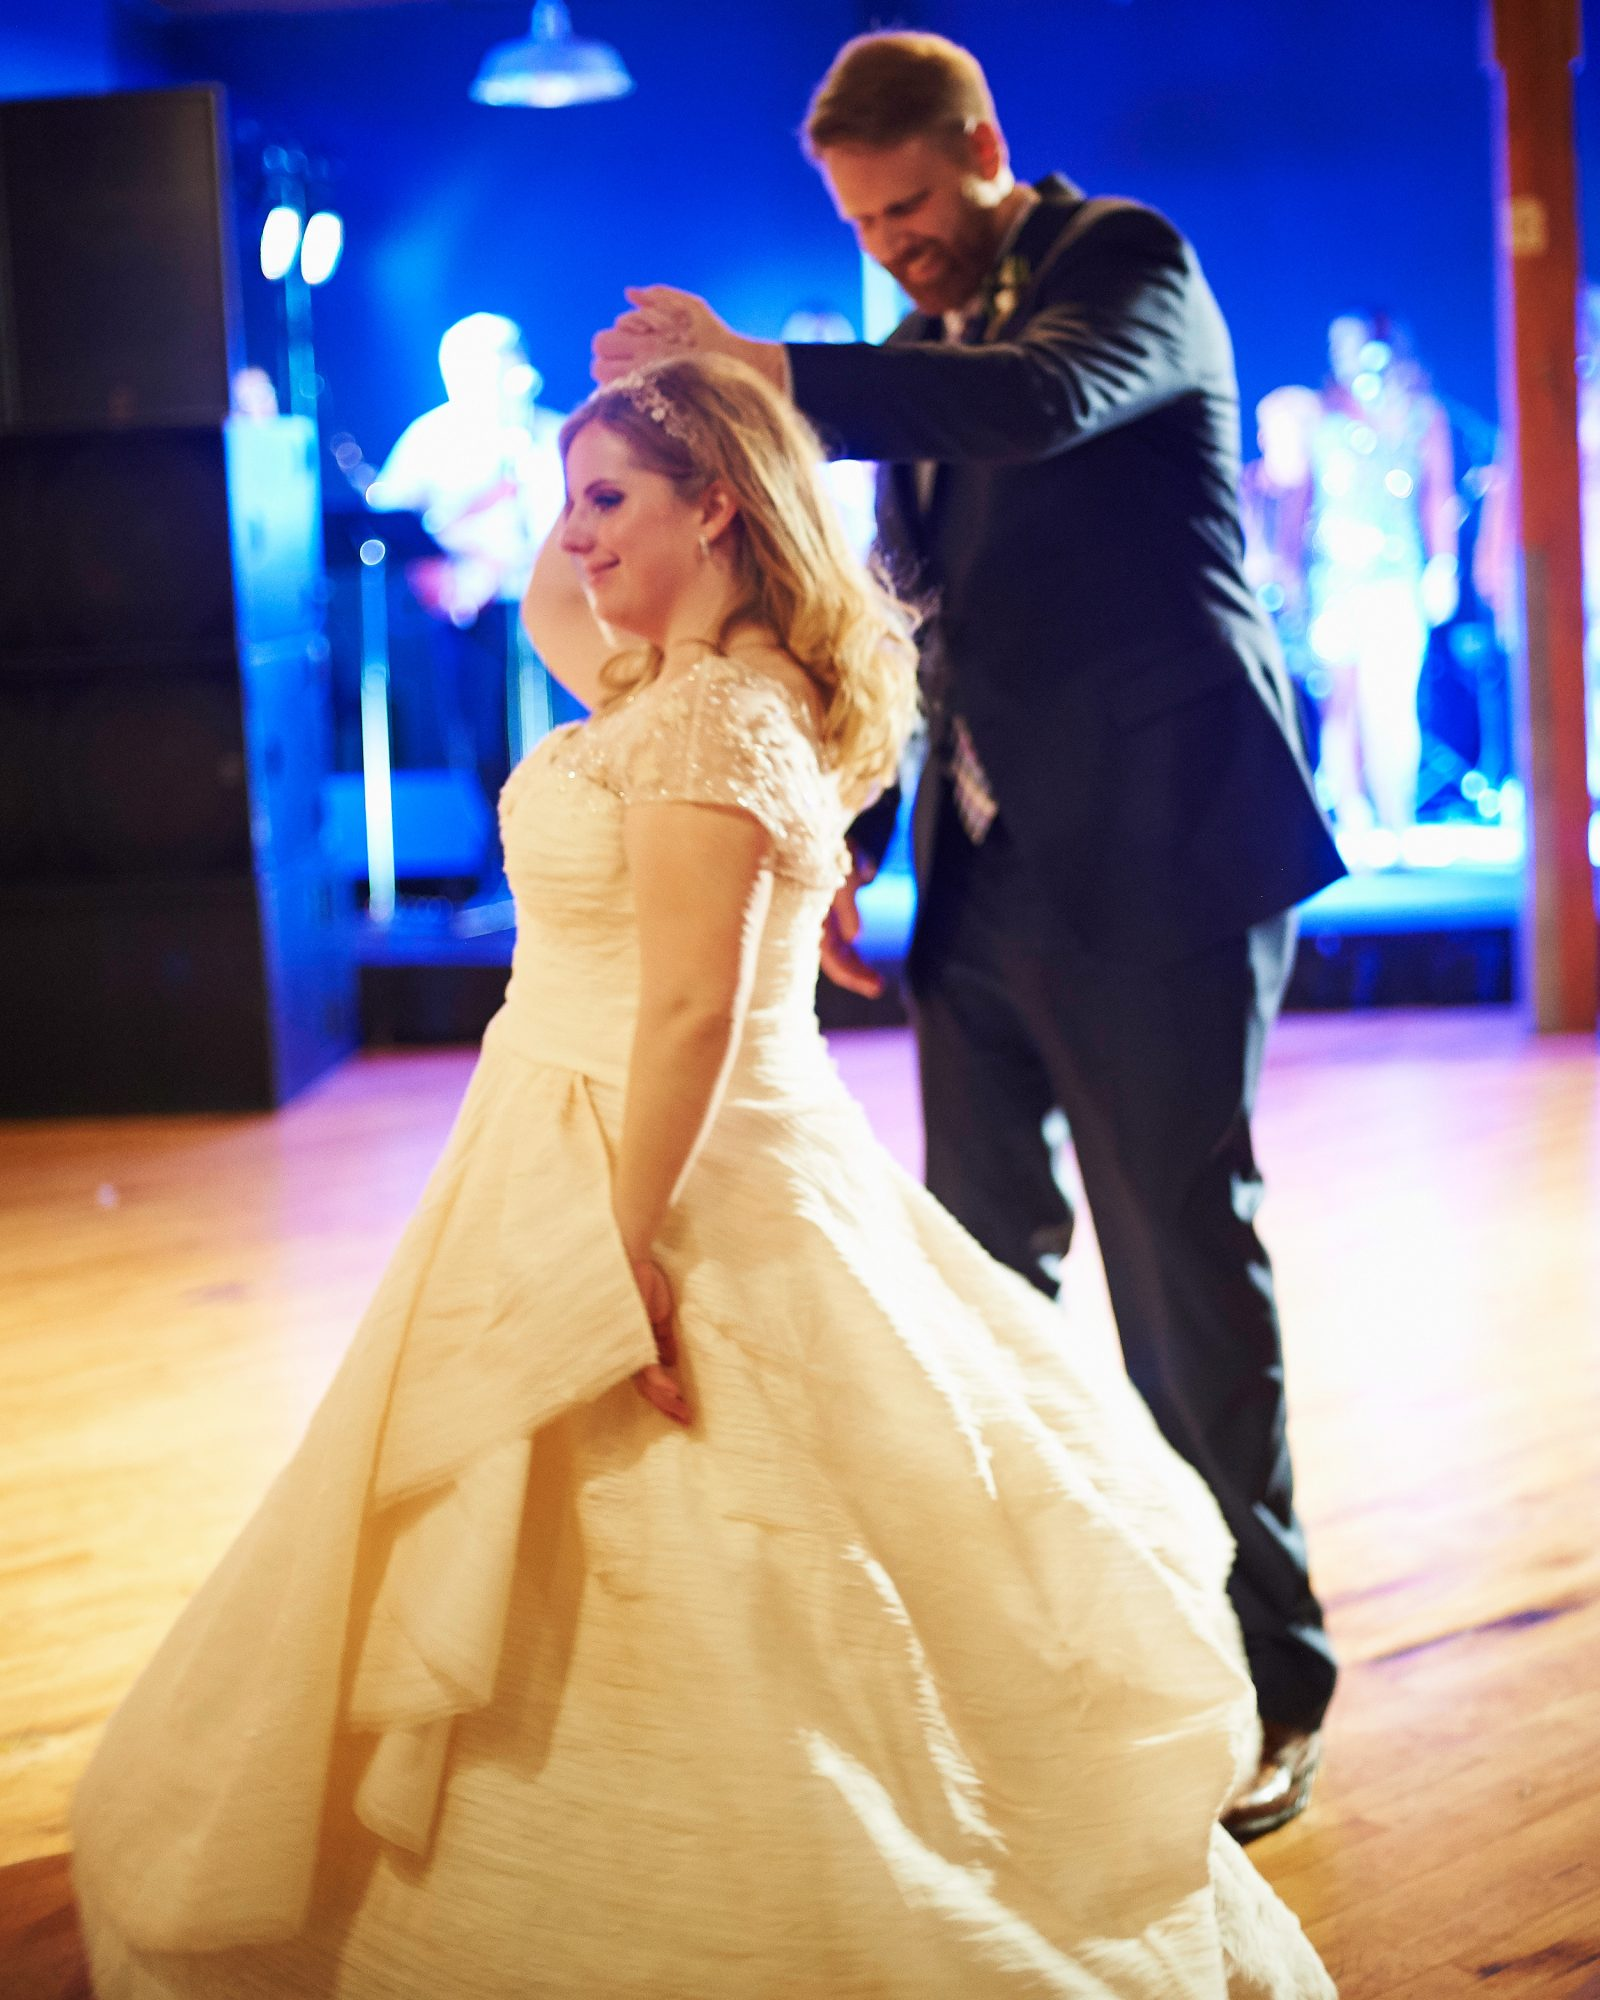 maddy-mike-wedding-firstdance-748.d3s.251.2015.49-6134174-0716.jpg